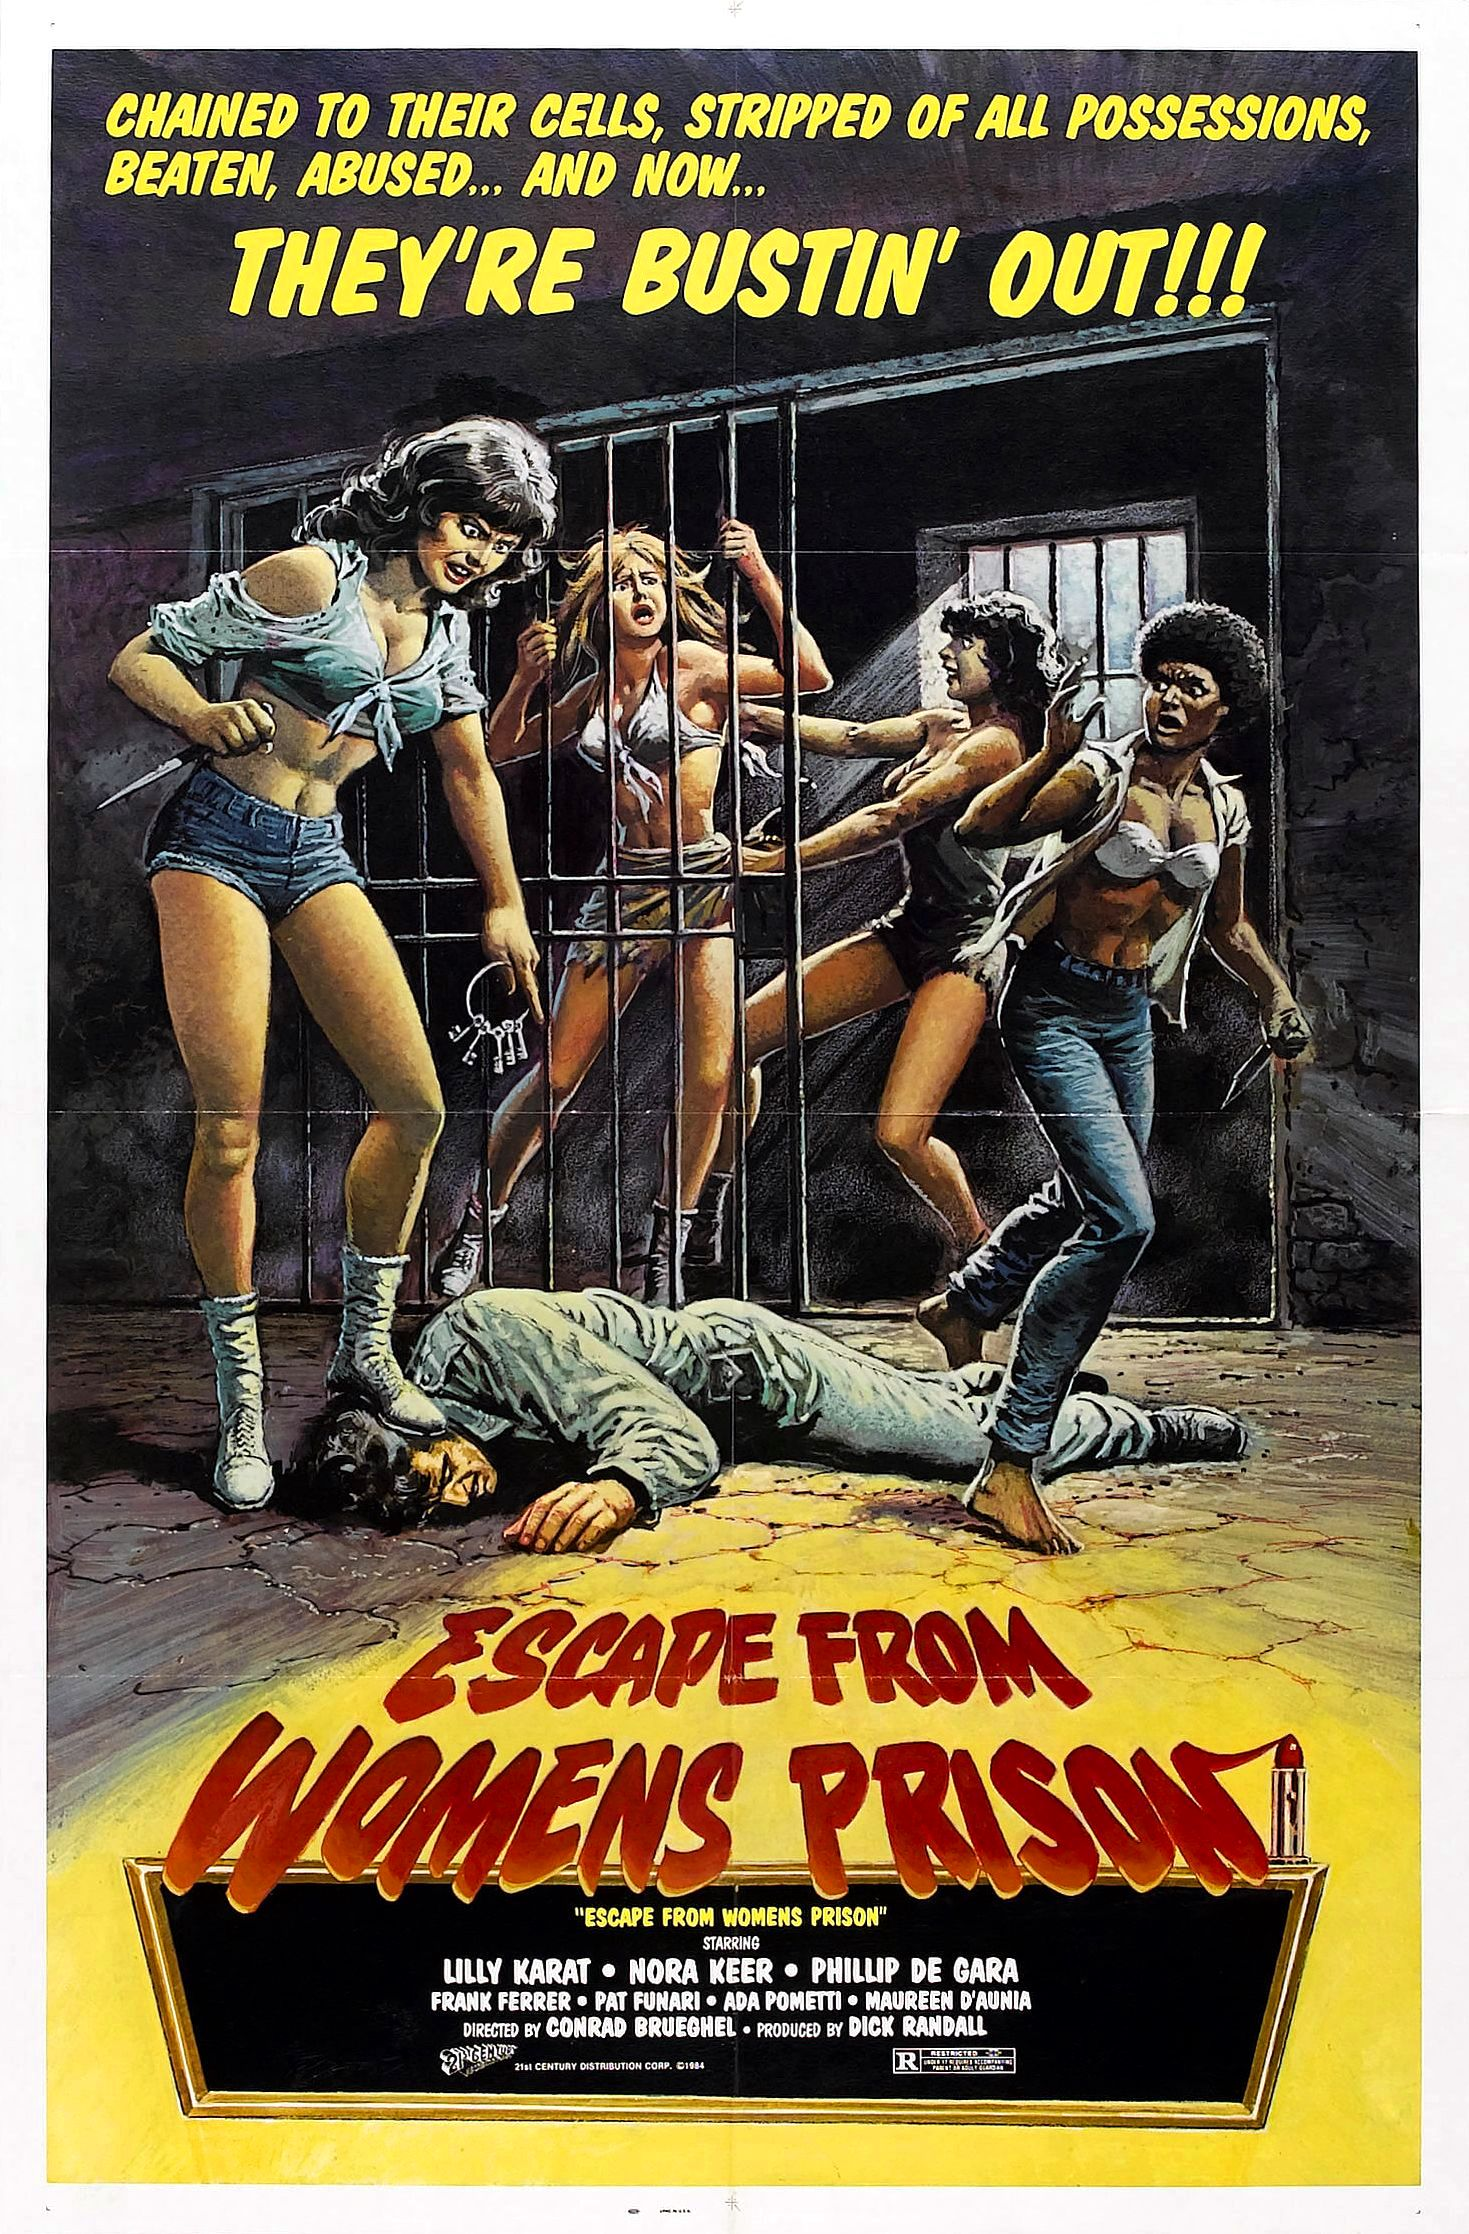 Escape from Women's Prison (1978)